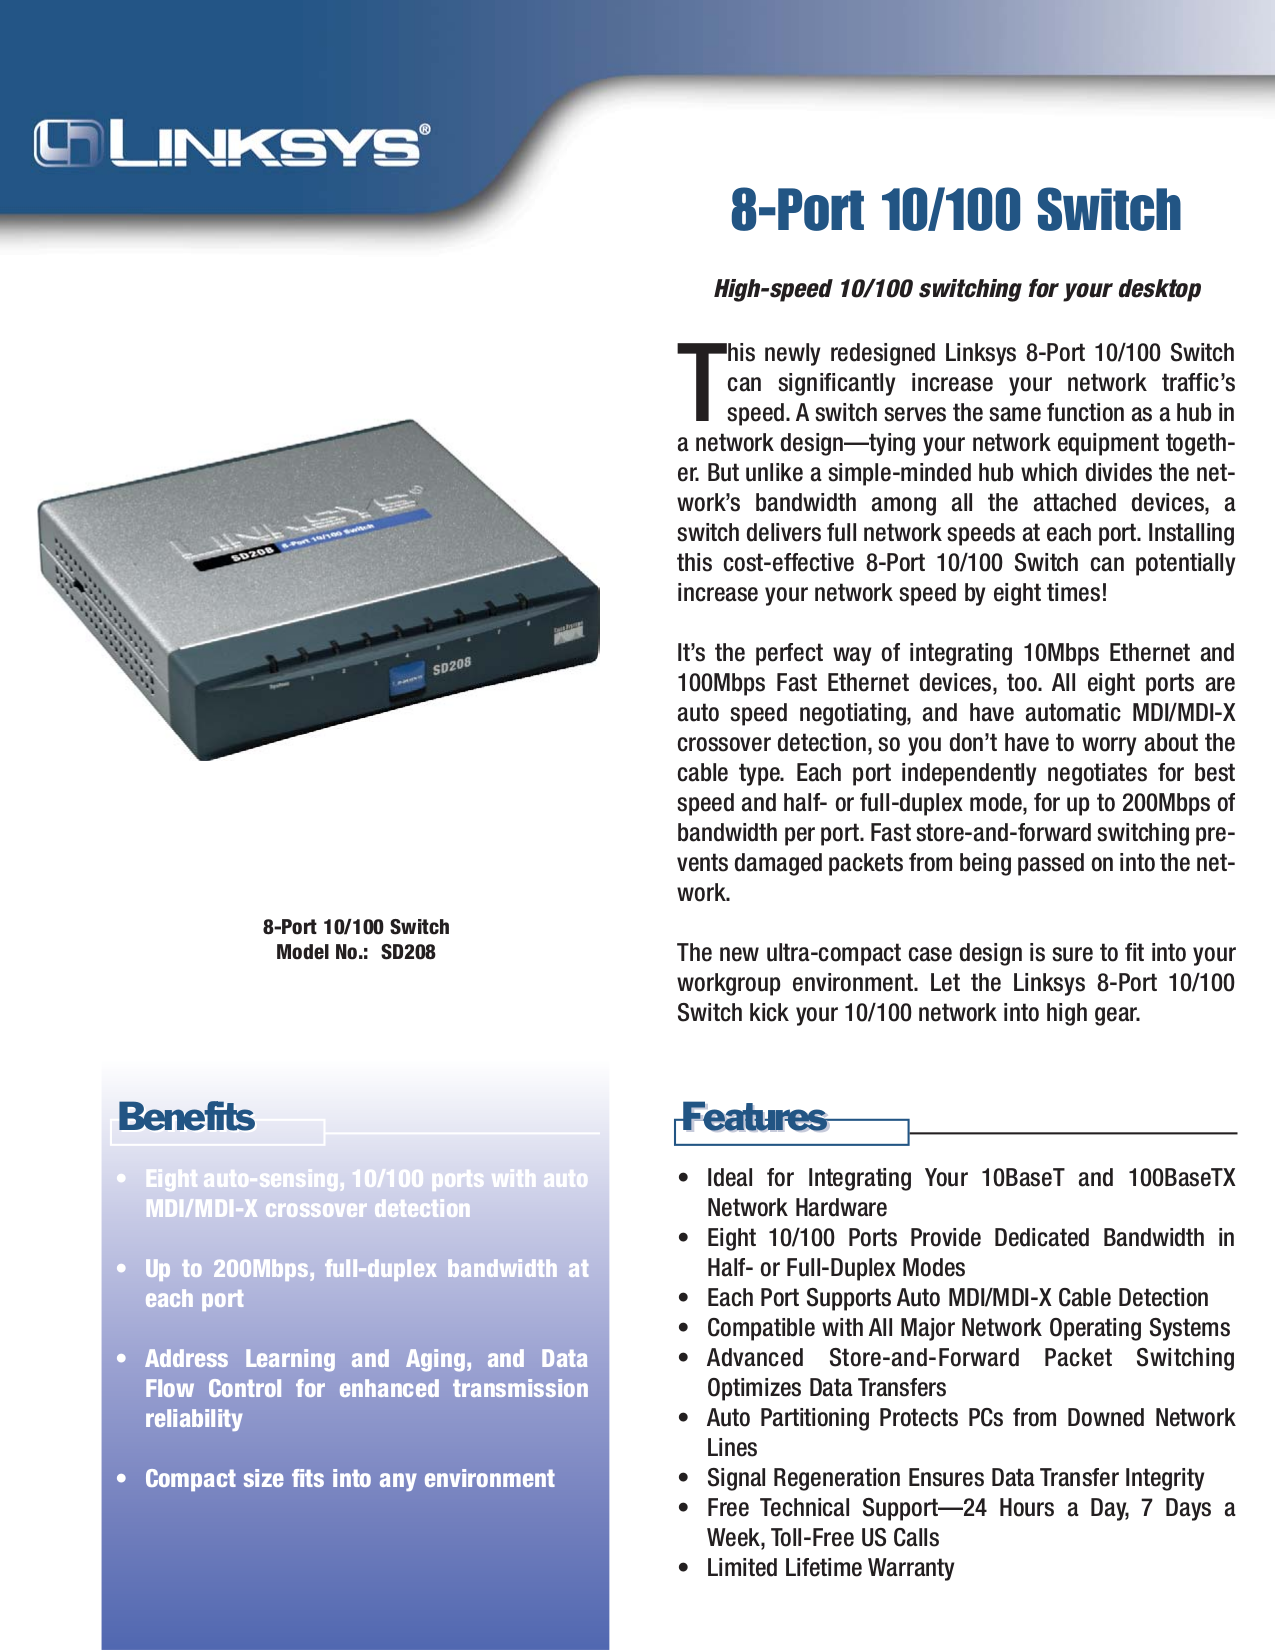 pdf for Linksys Switch SD208 manual